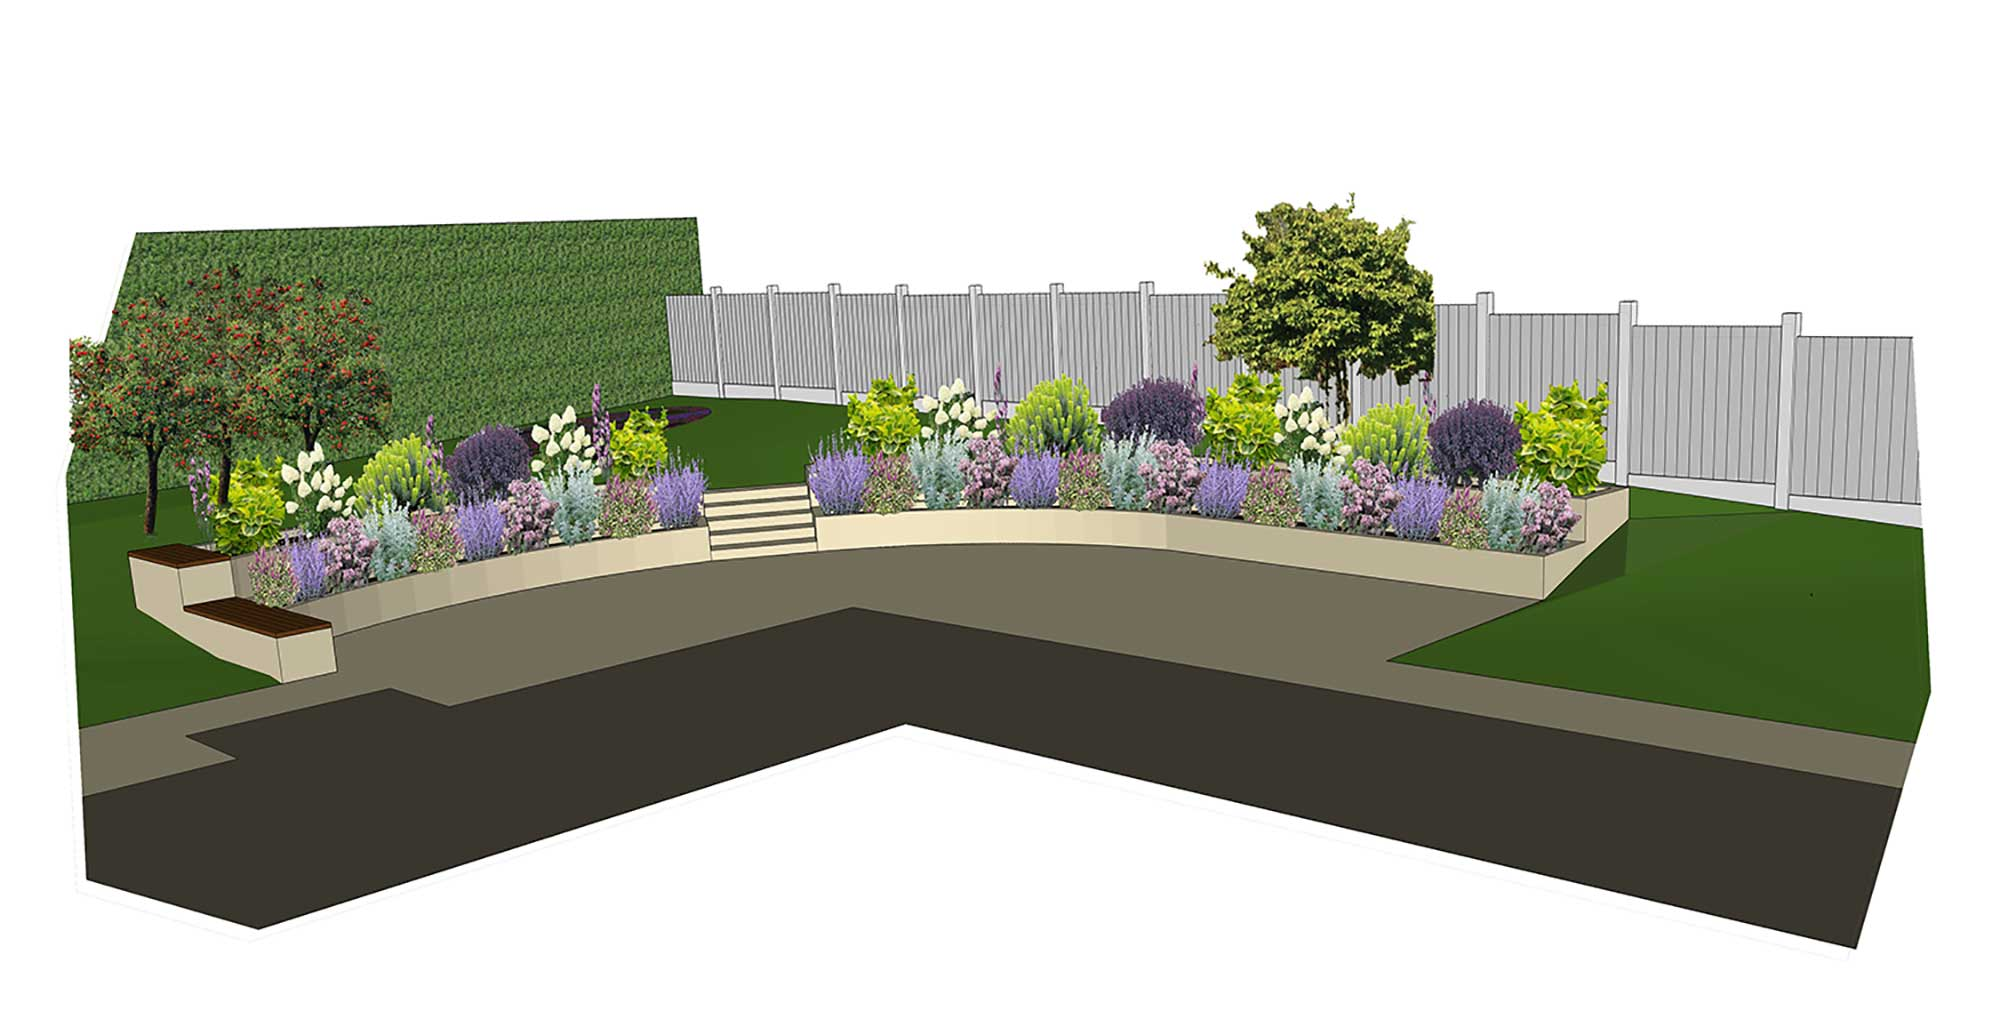 rear garden design visualisation garden design layout garden planting design ideas garden planner uk borders for gardens hornby garden designs - Garden Design Uk